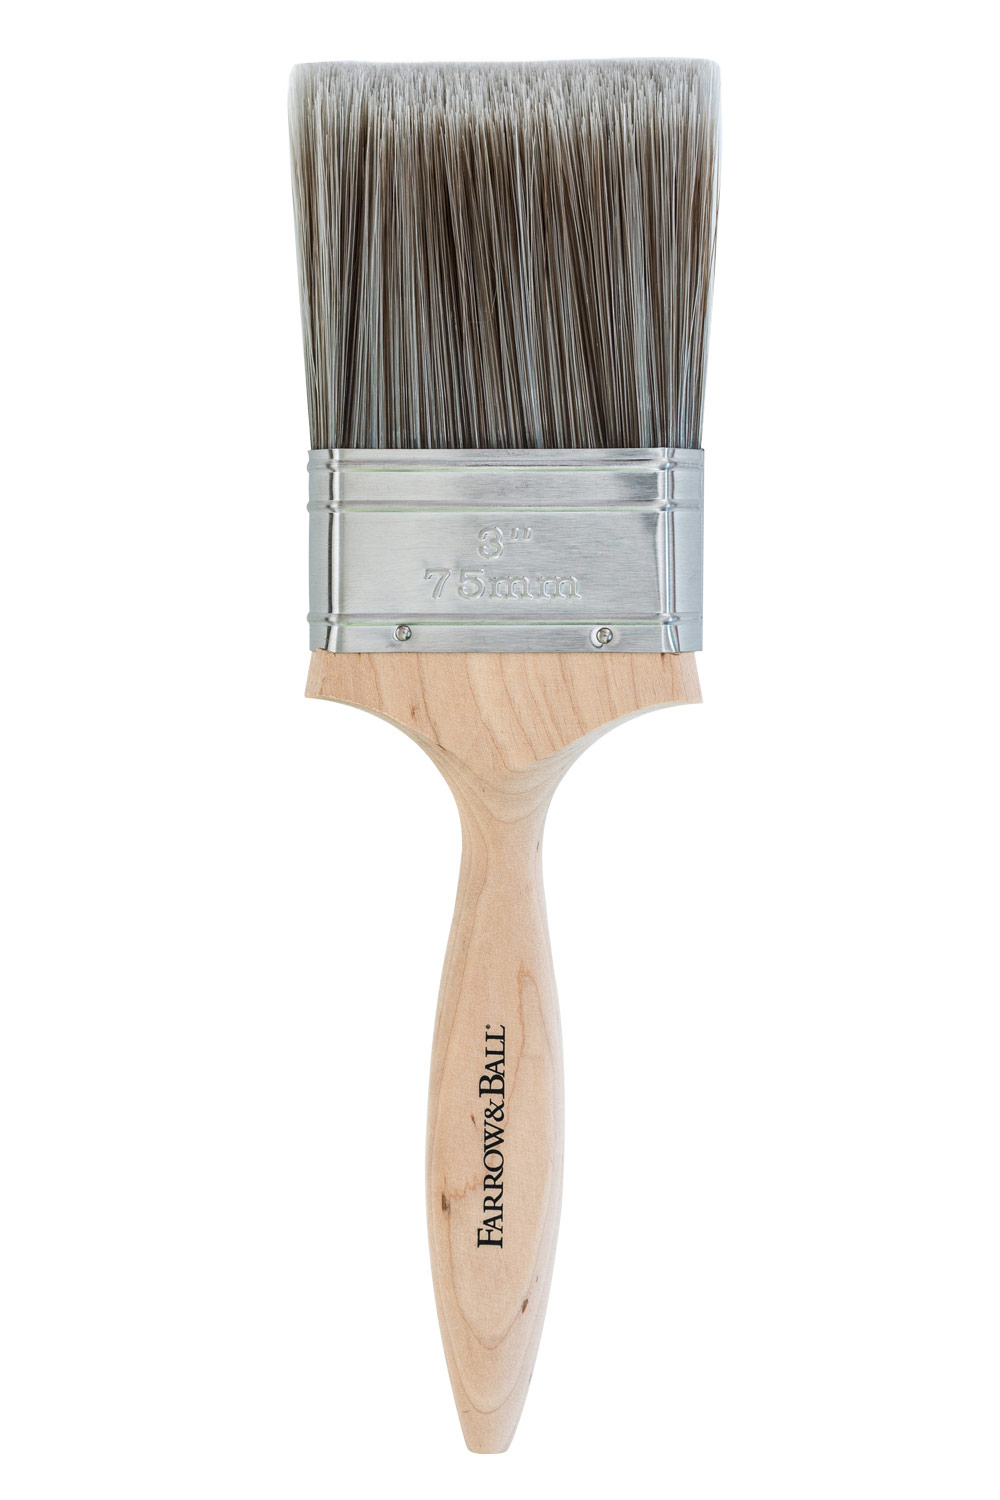 3 Inch Paint Brush $19.00  Order Now